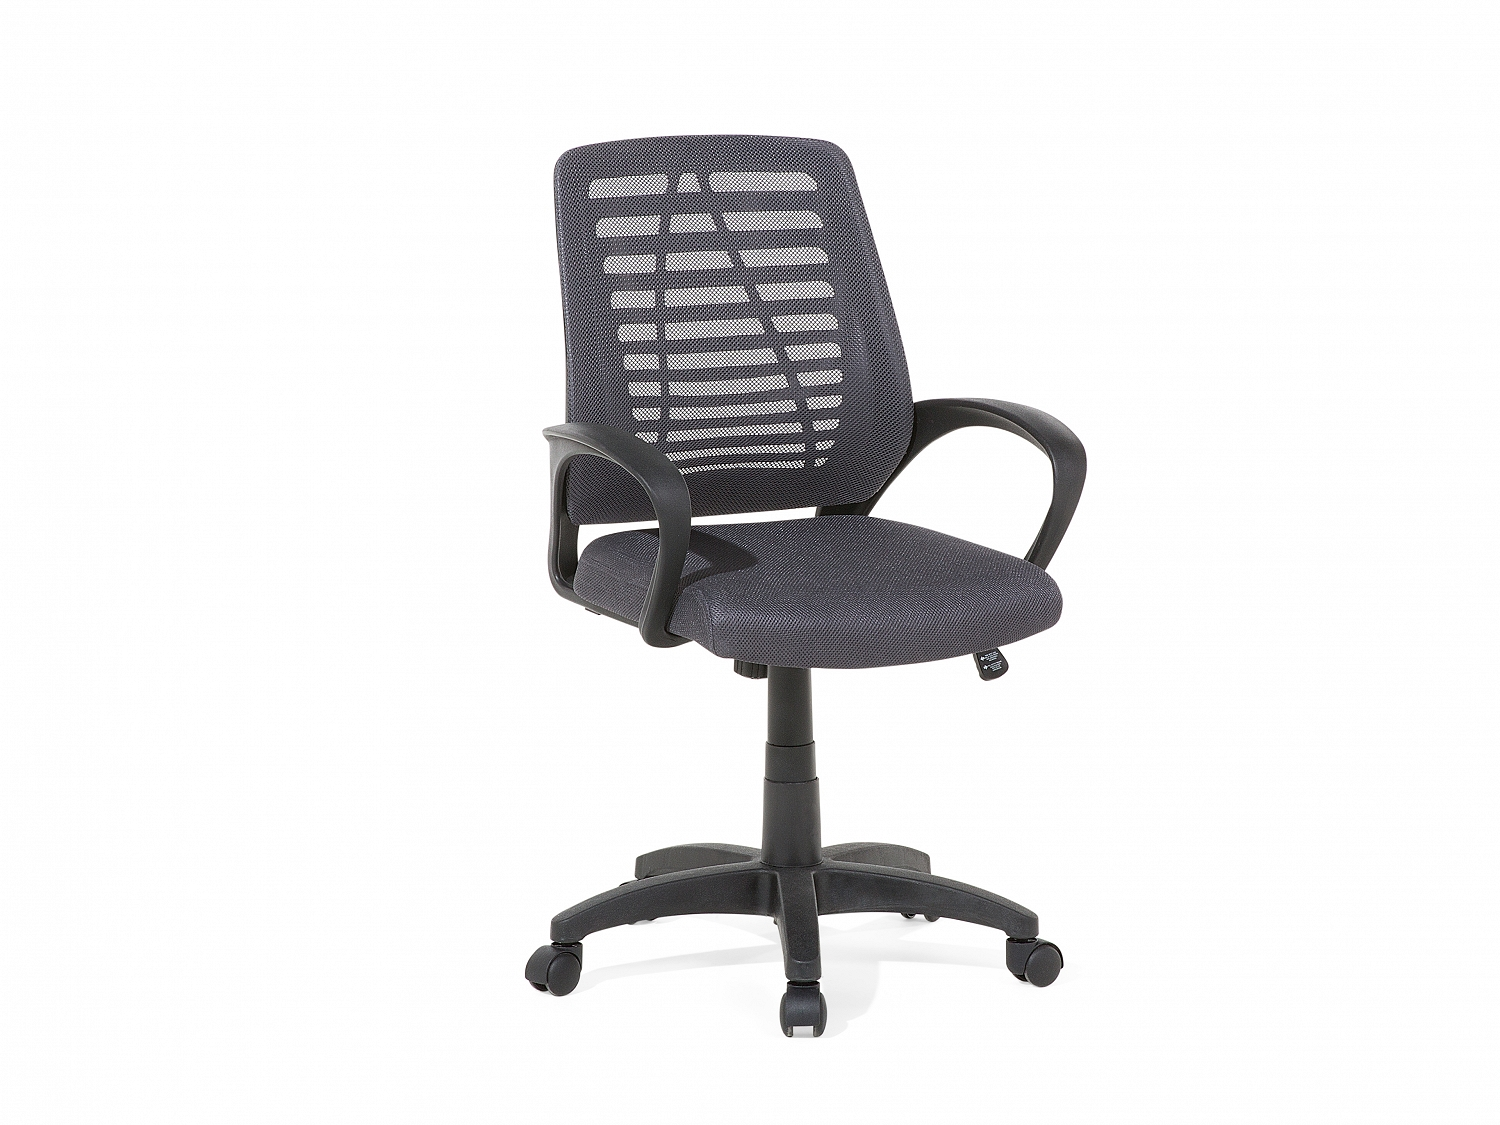 desk swivel chair. Image Is Loading Office-Chair-Desk-Computer-Swivel-Chair-High-Back- Desk Swivel Chair